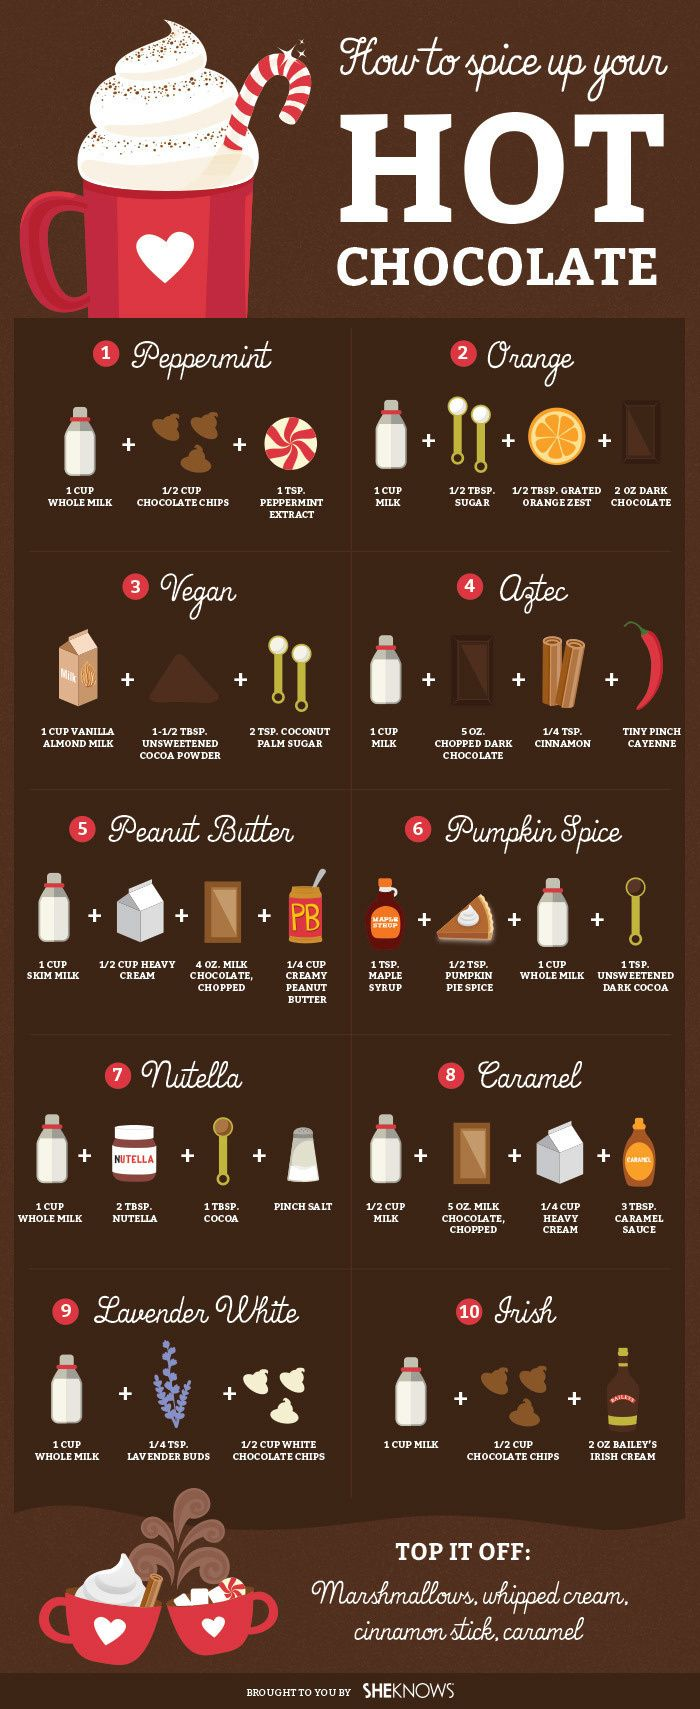 The Only Thing You Need To Know To Make The Perfect Hot Chocolate.